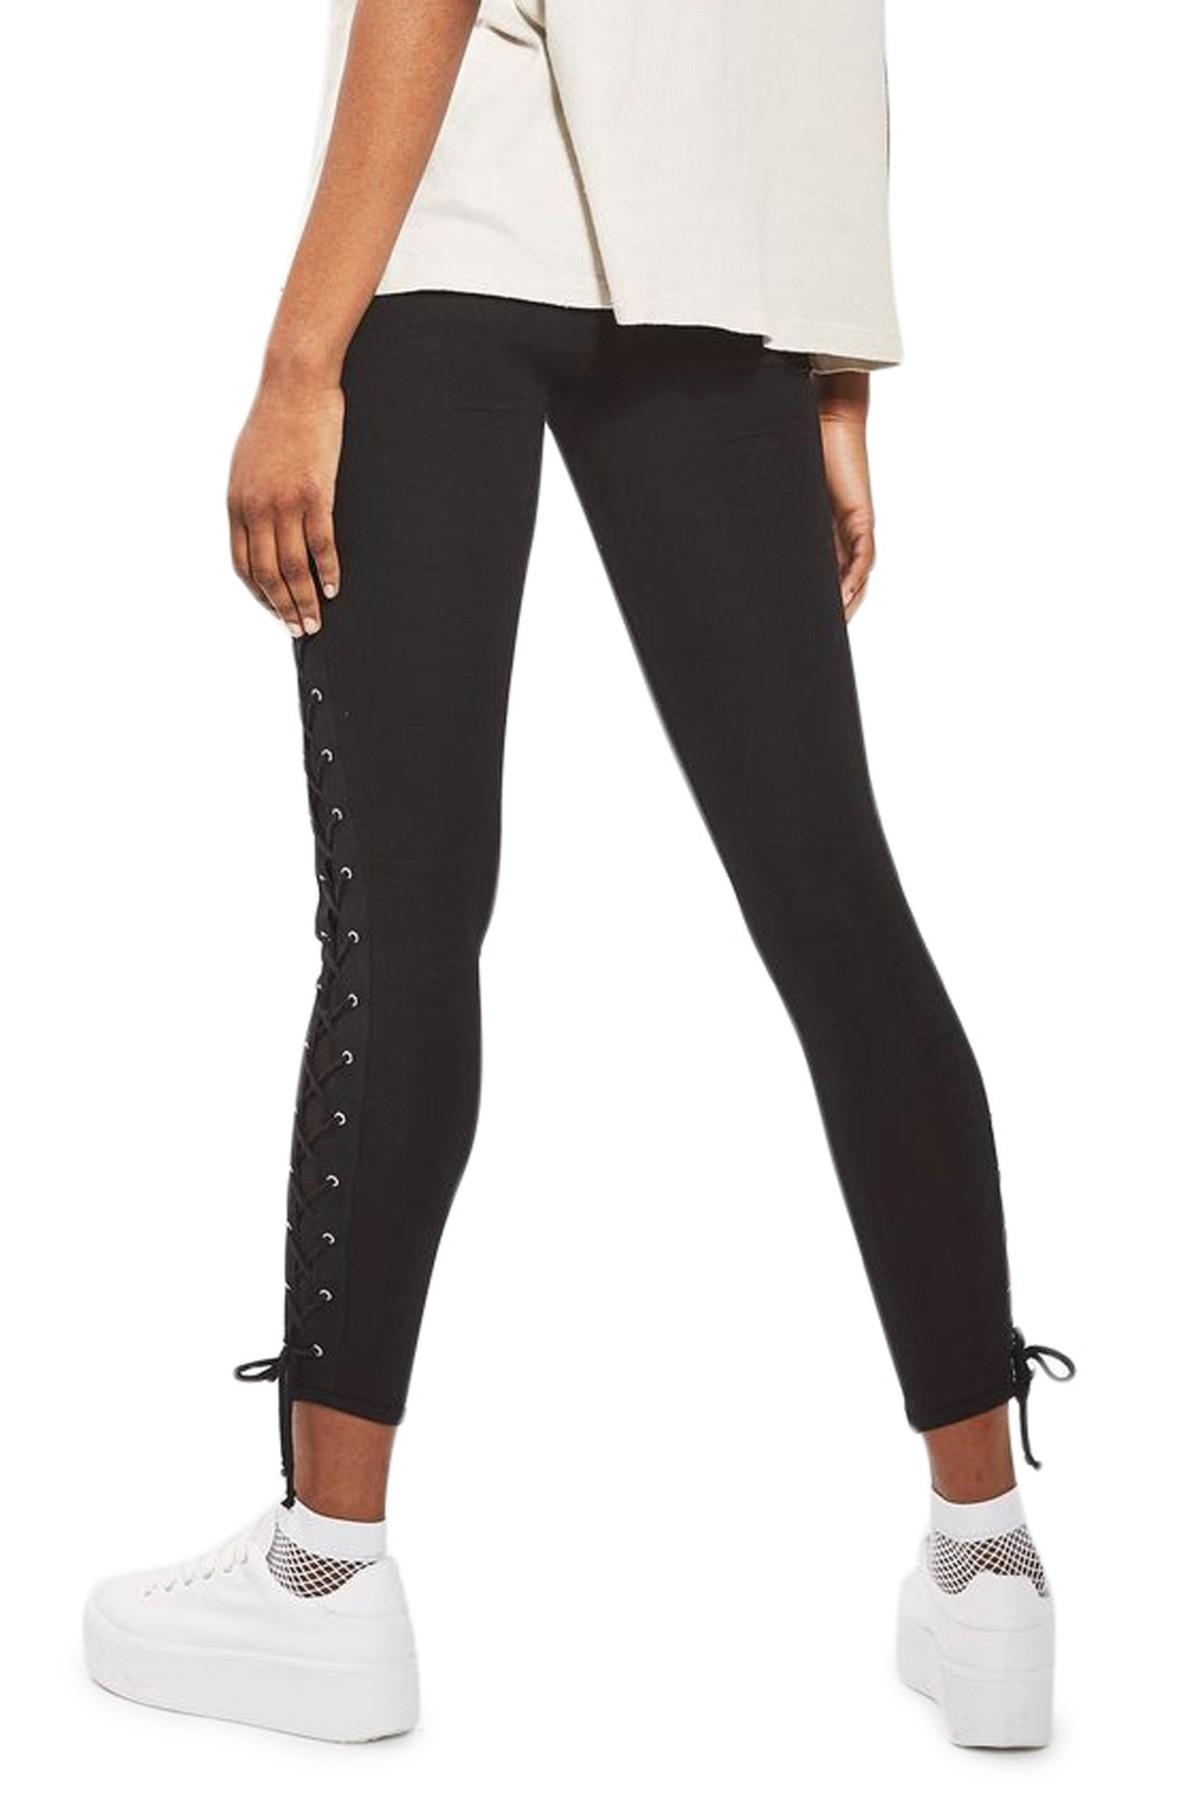 48bee1b2da5bc8 Lyst - TOPSHOP Lace-up Leggings in Black